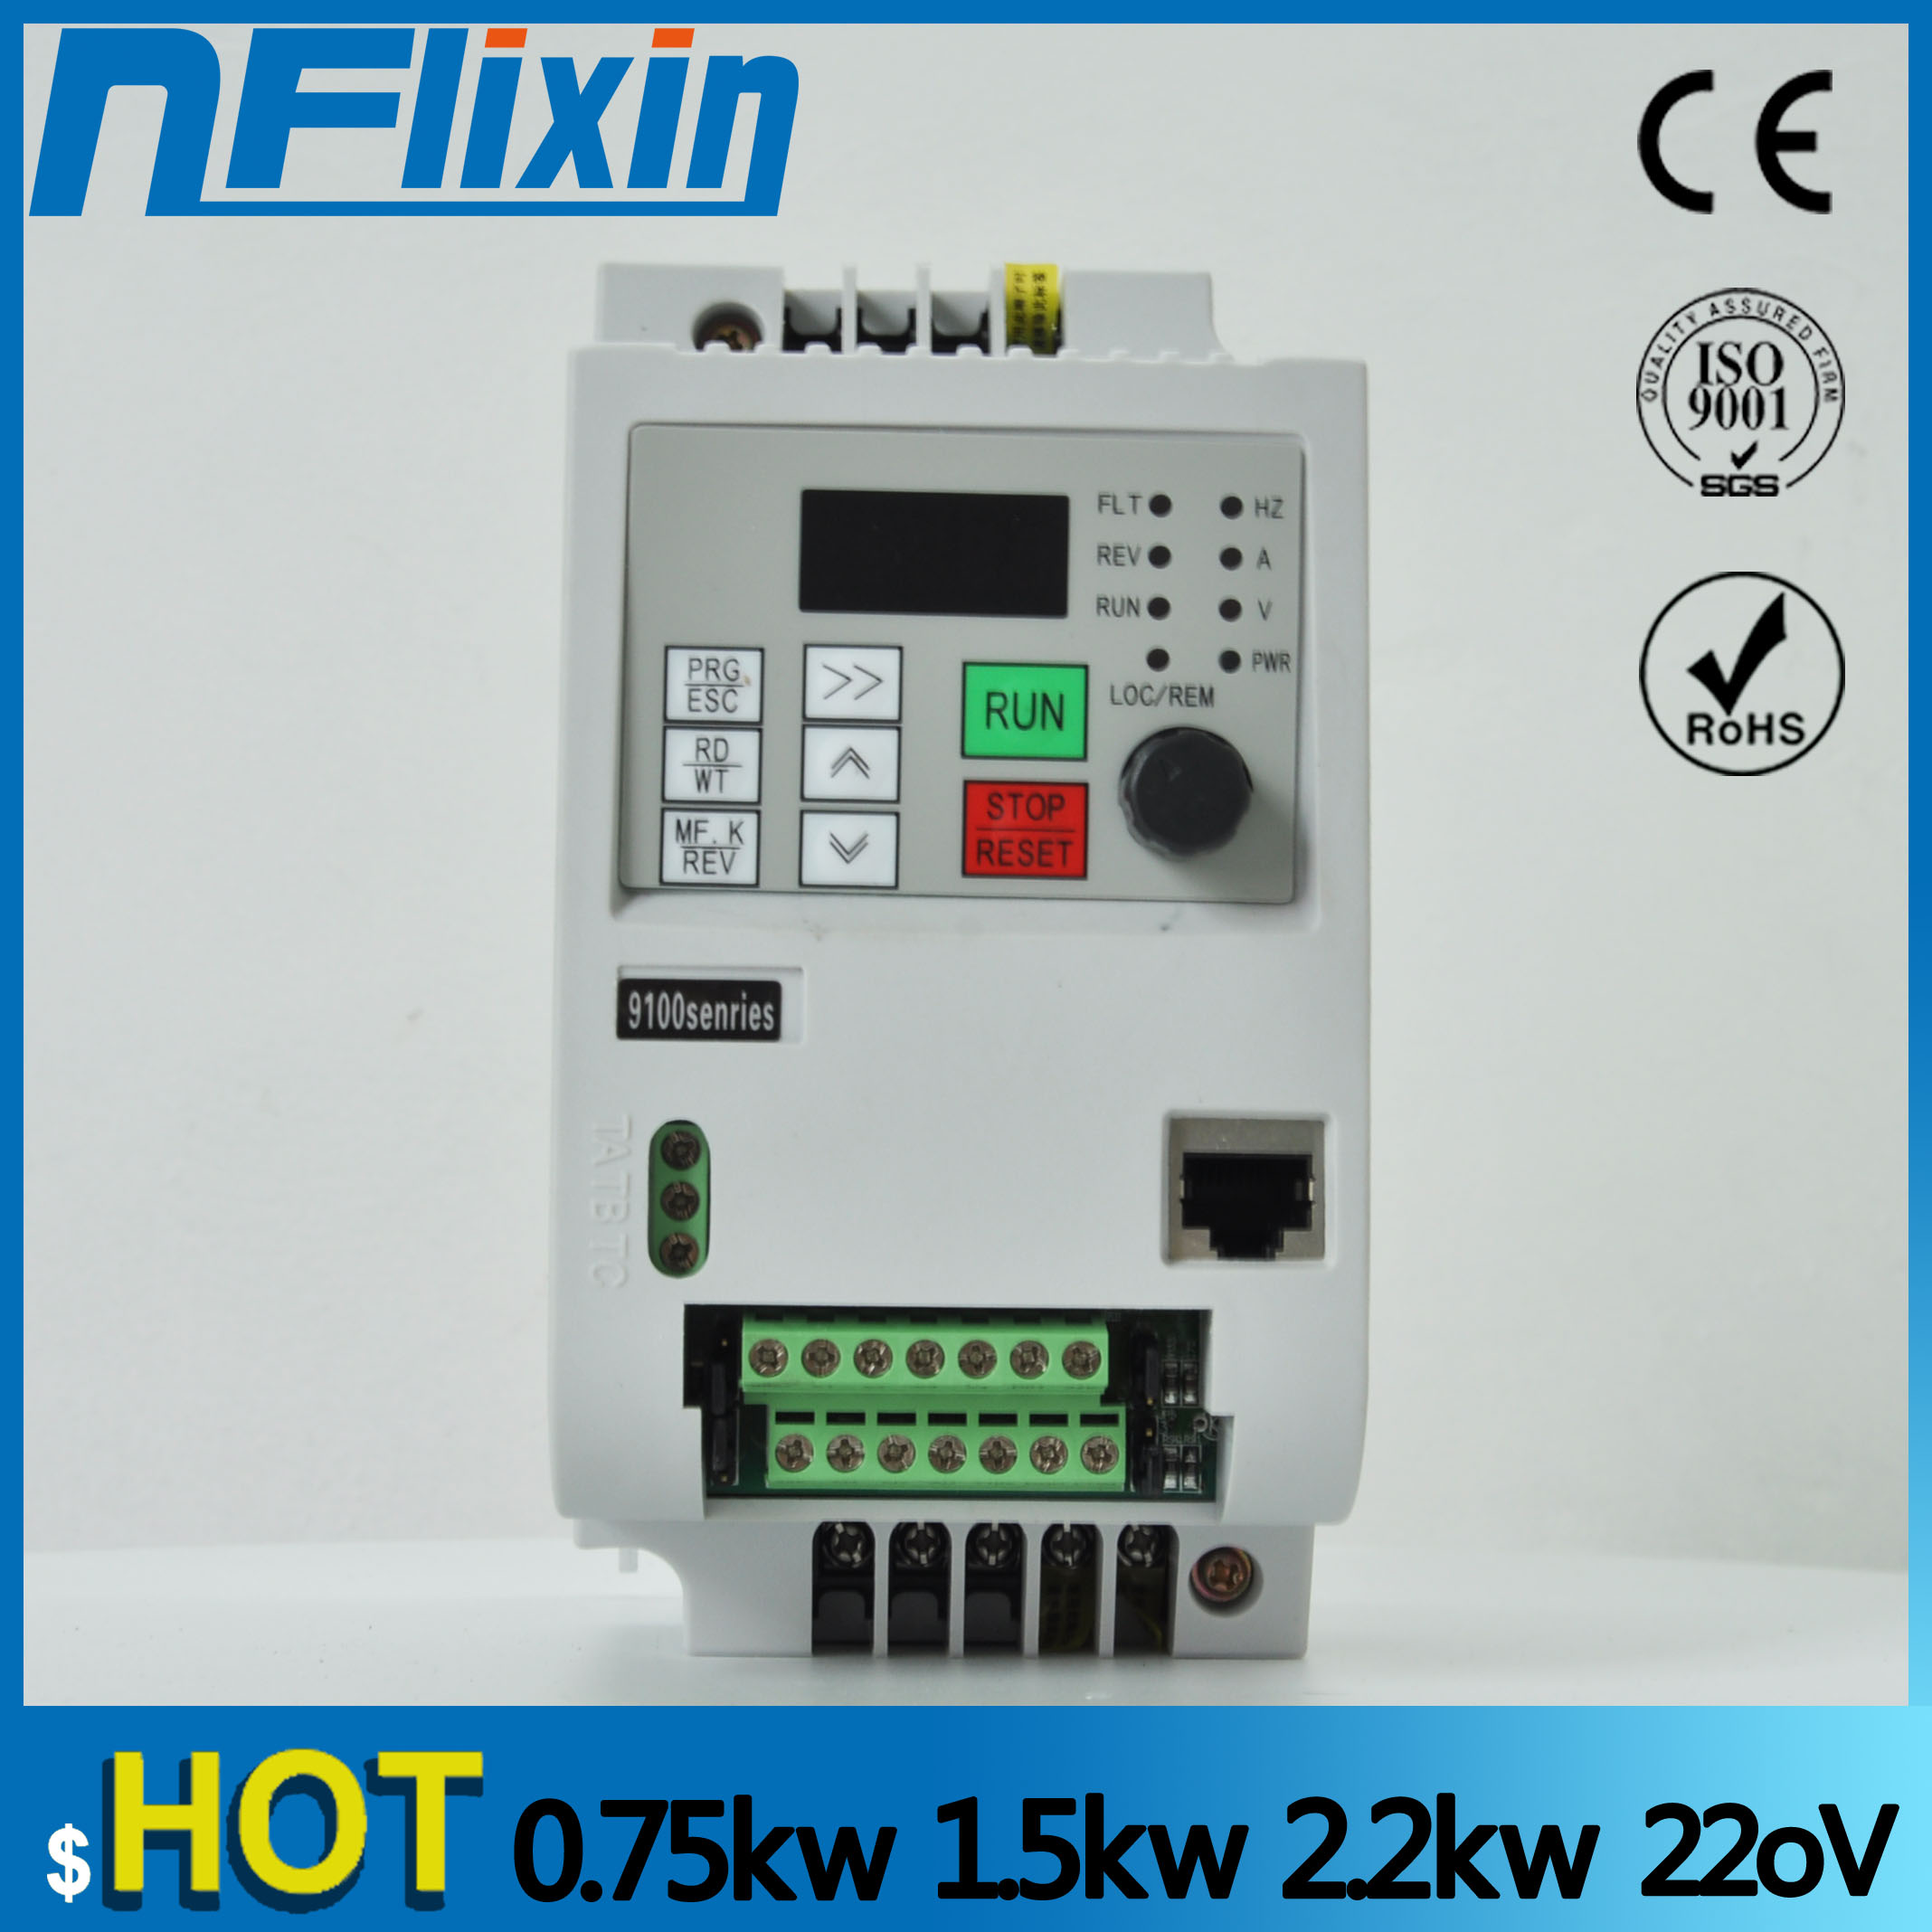 220V 0.75KW/1.5KW/2.2KW 2HP Mini VFD Variable Frequency Drive Inverter for Motor Speed Control Converter